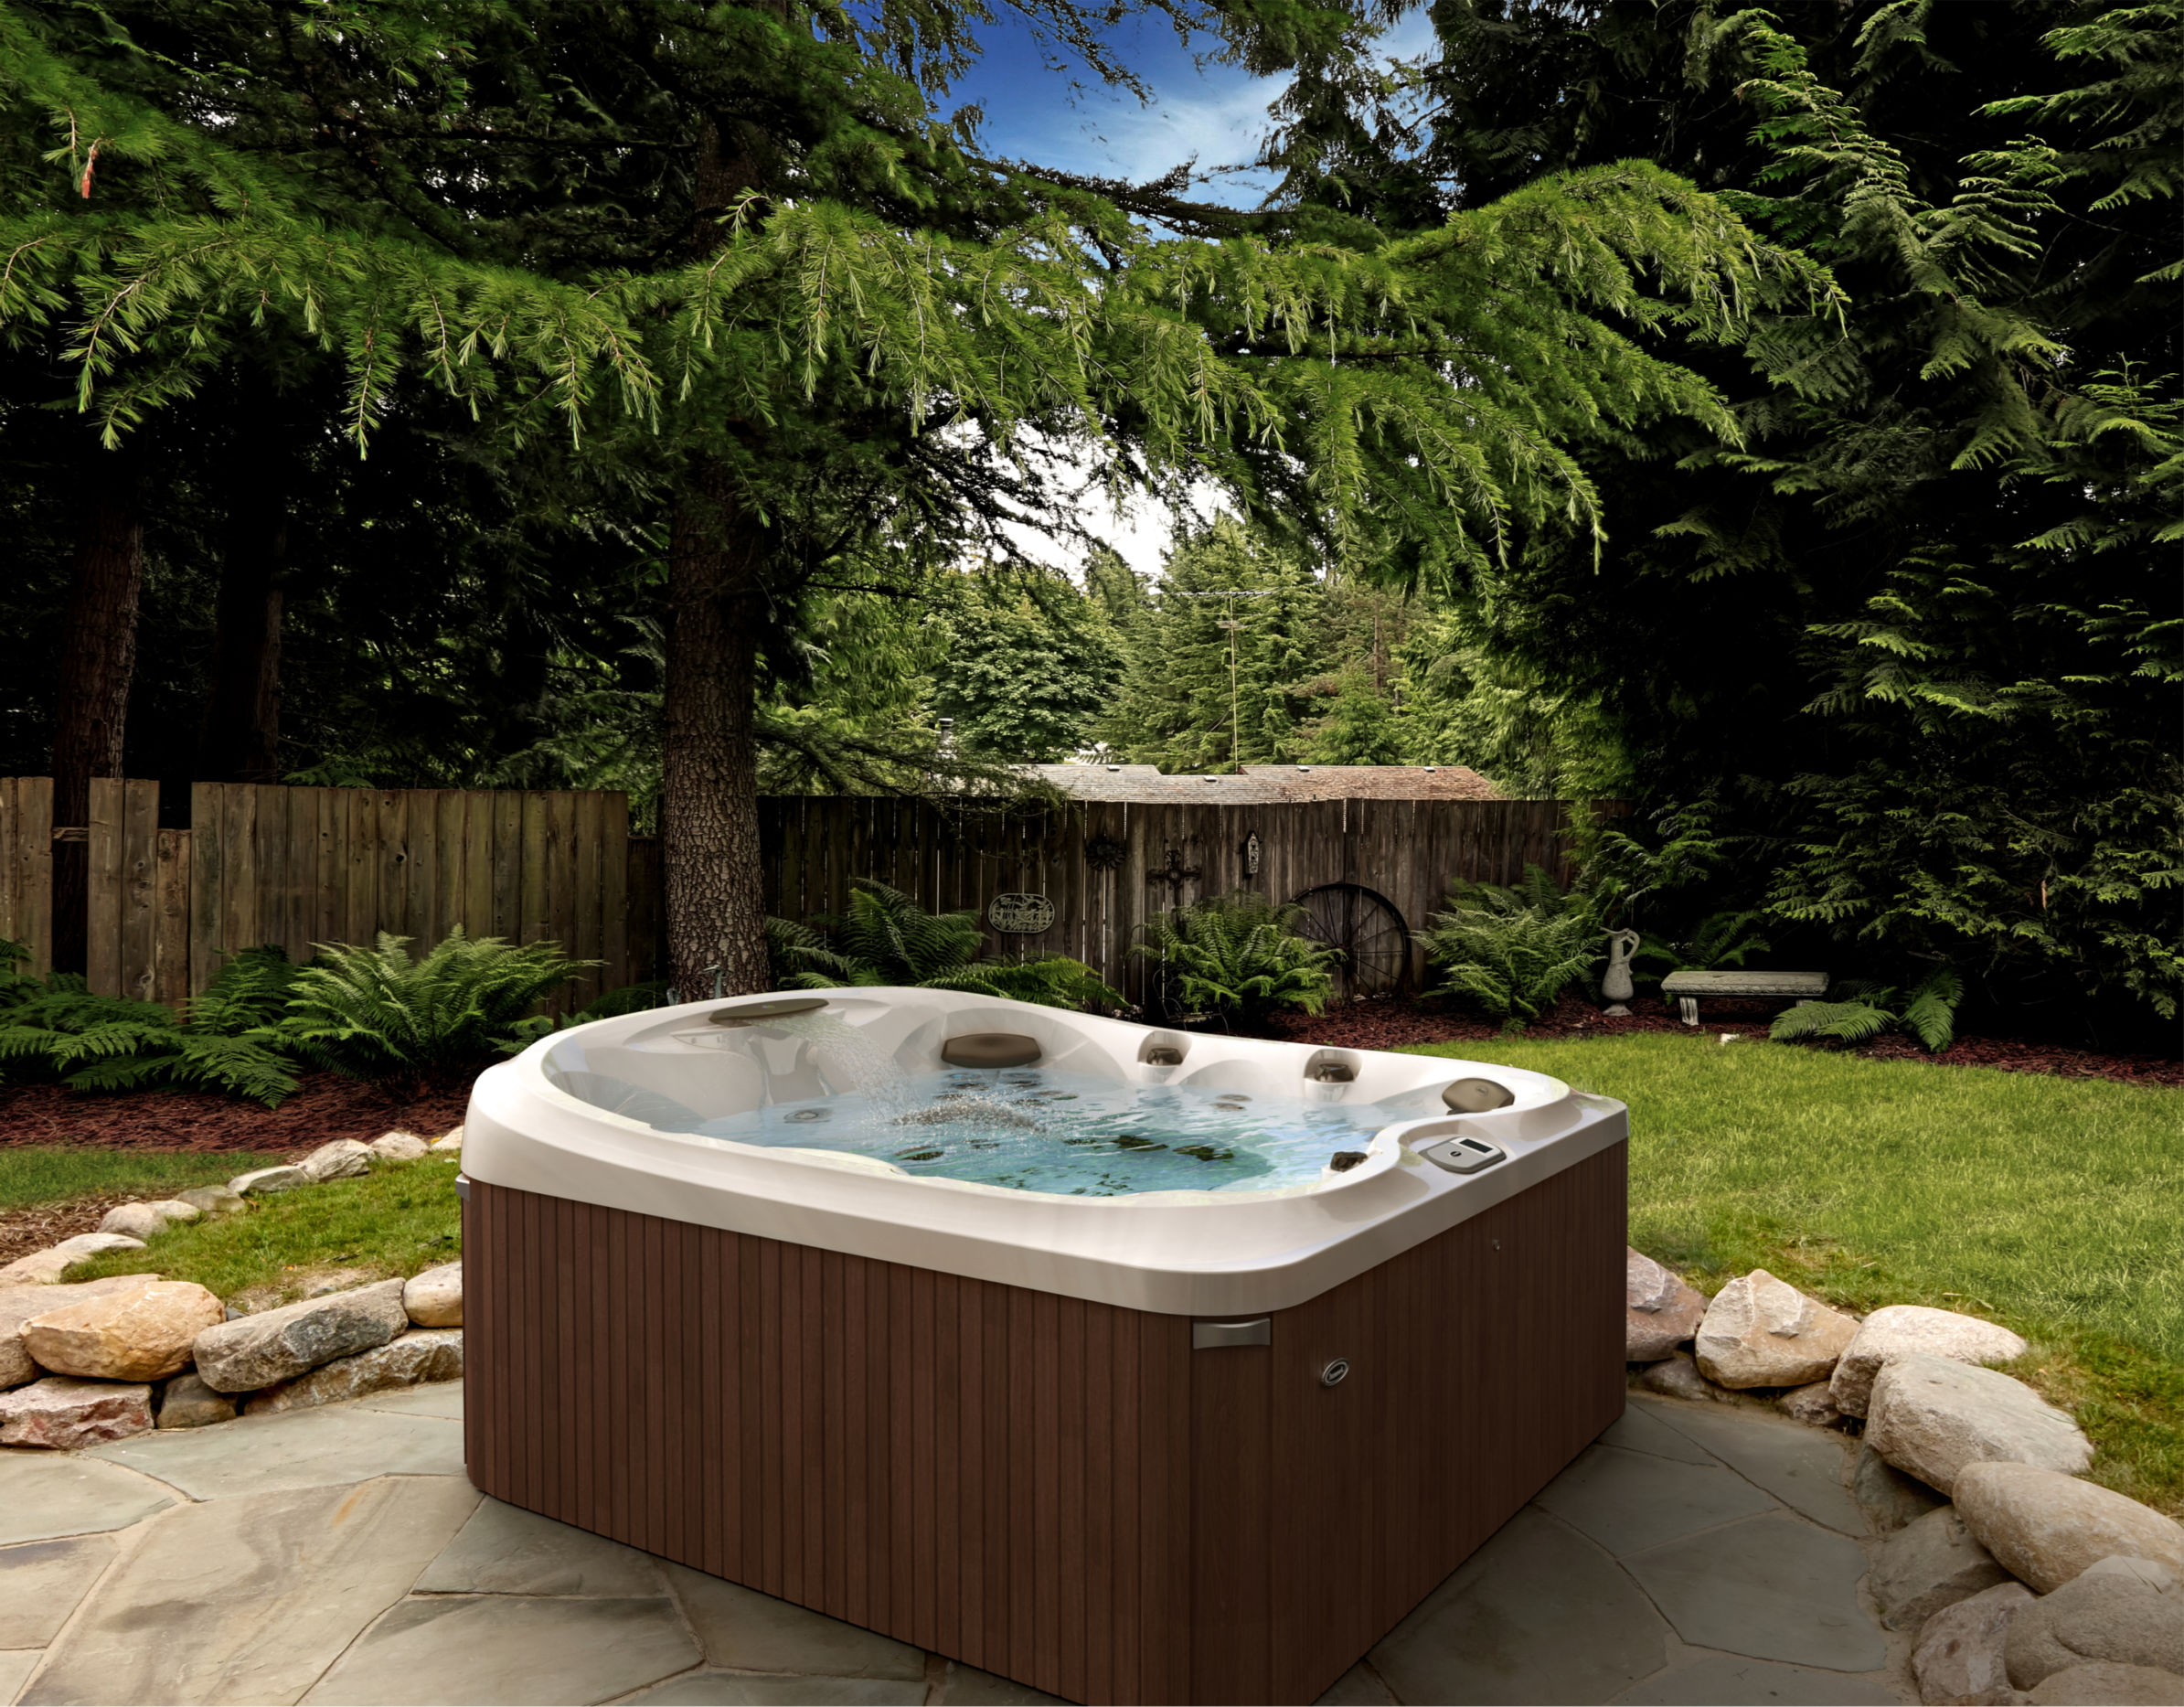 A Jacuzzi® hot tub on a pavemented base in a scenic backyard.